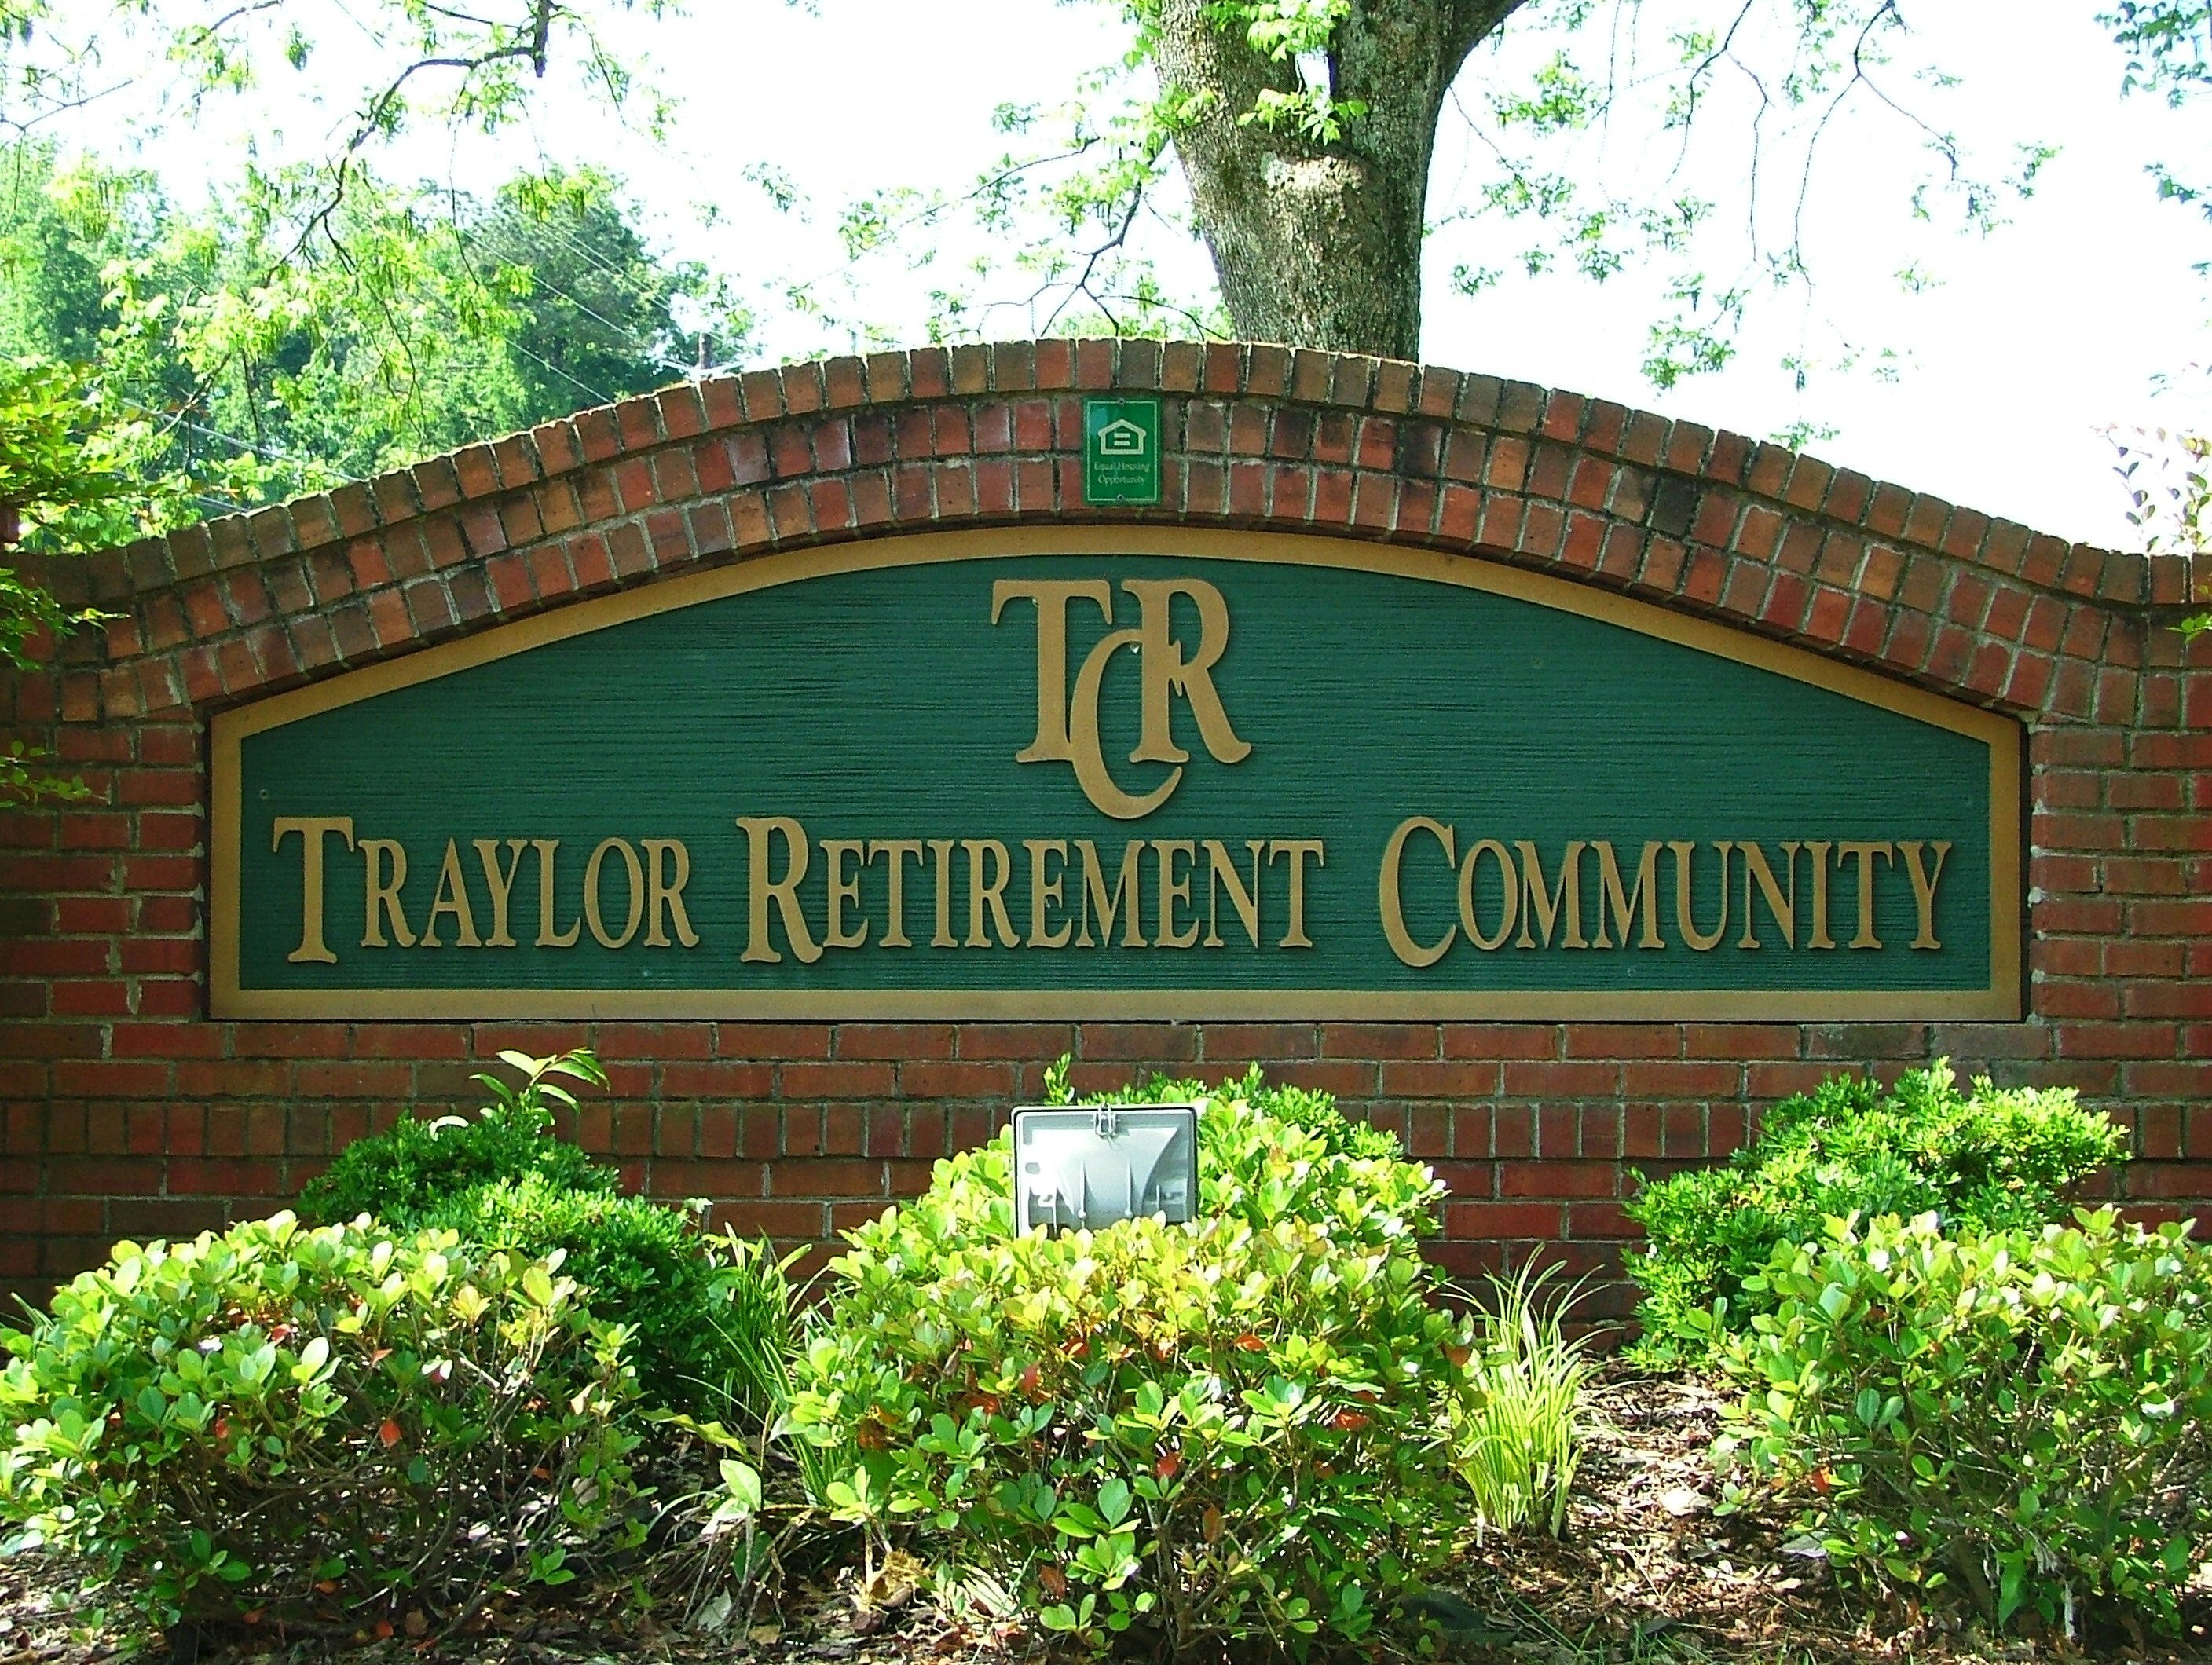 Traylor Retirement Community - Photo 0 of 1